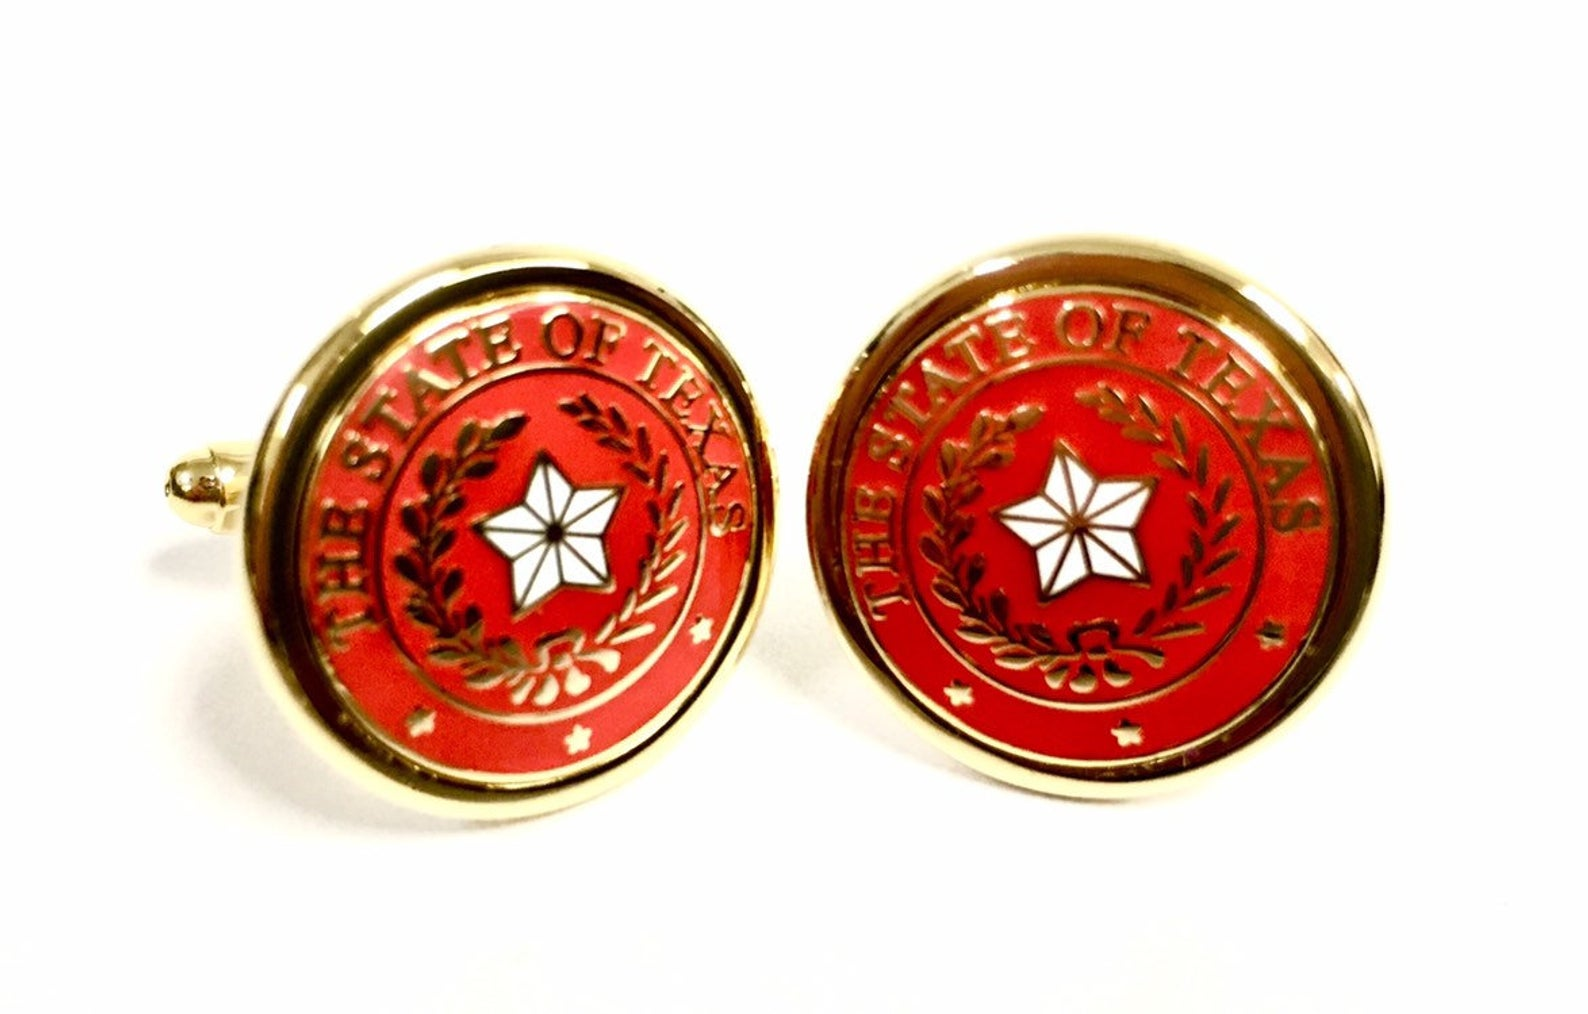 Cufflinks with the Texas State Seal - Red & Gold